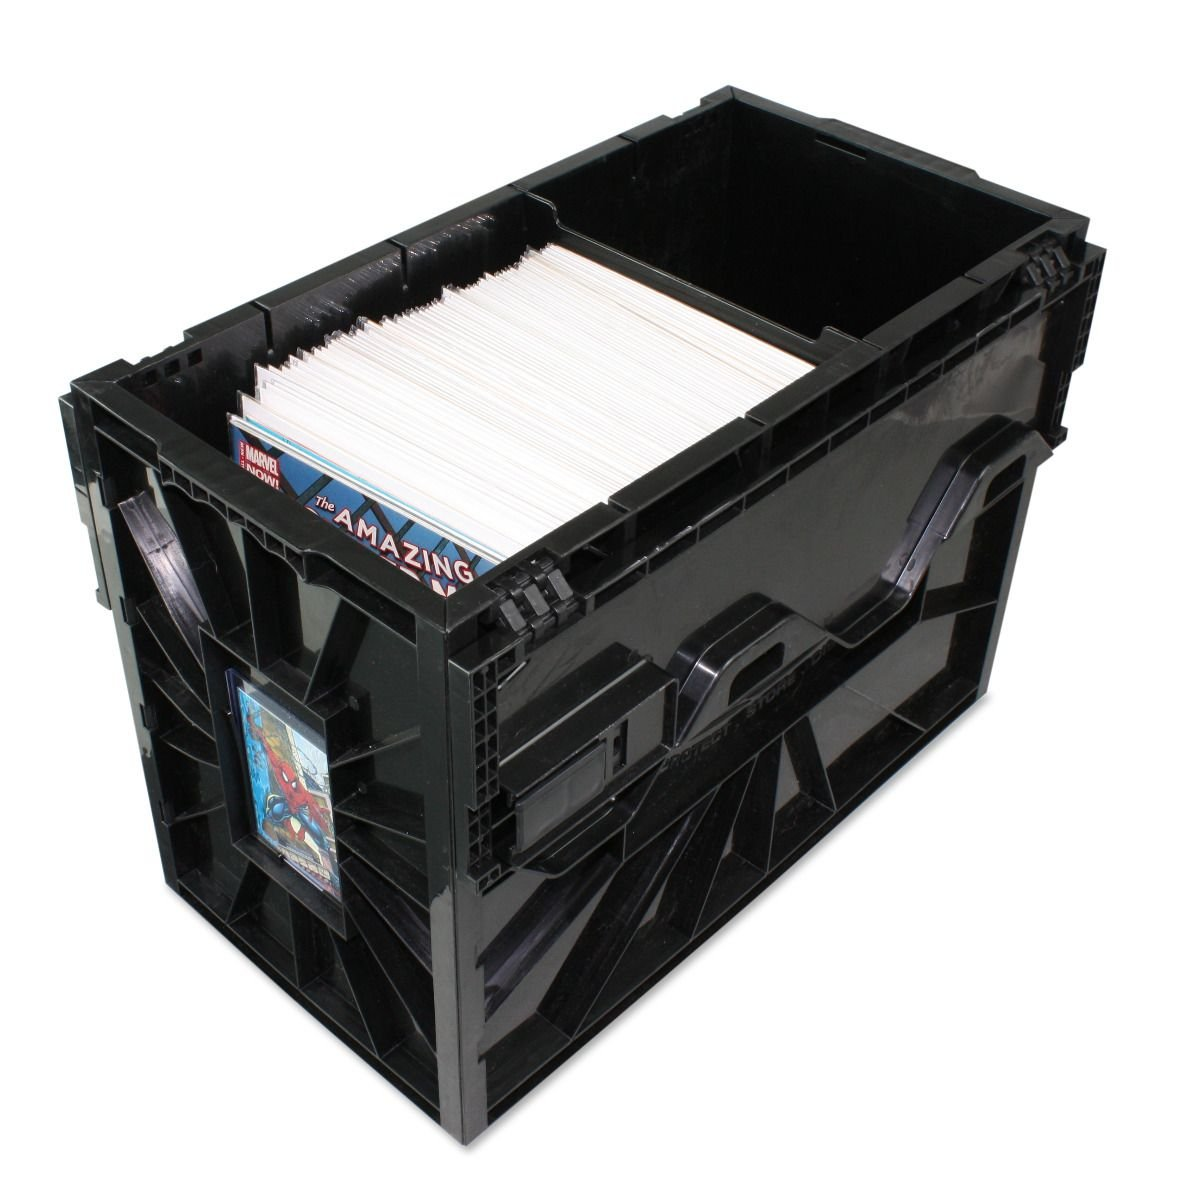 Short Comic BIN - Plastic - Black BCW Supplies